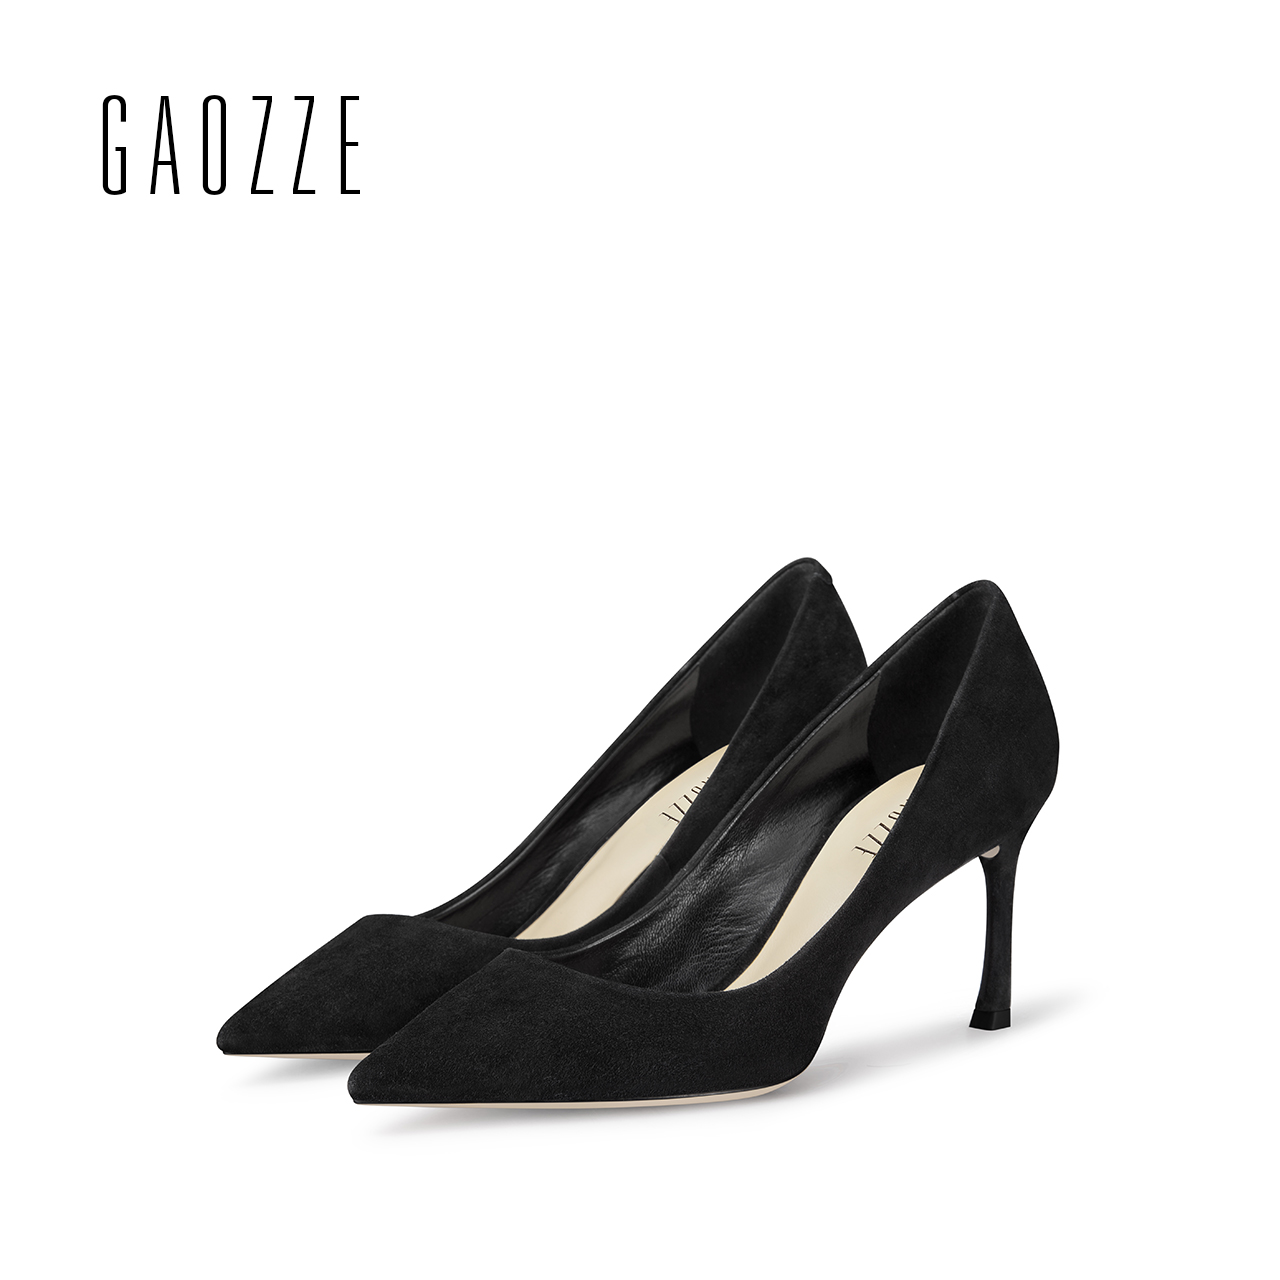 GAOZZE new spring summer Sheep suede leather women shoes pointed toe high heels pump shoes female shallow mouth office shoes 7cm new 2017 spring summer women shoes pointed toe high quality brand fashion womens flats ladies plus size 41 sweet flock t179